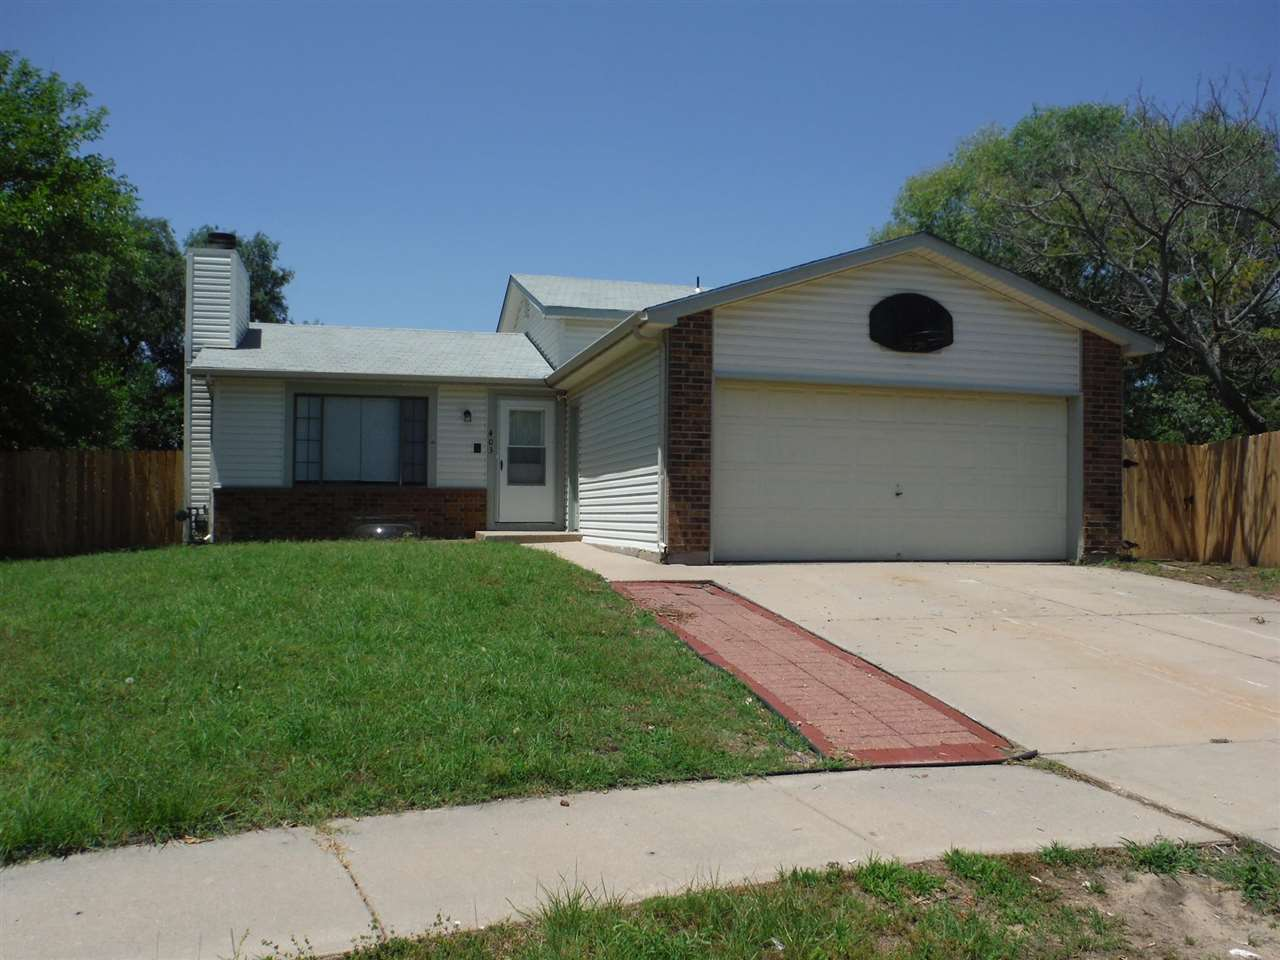 Remodeled & Updated 3 bedroom 2 bathroom home with a bonus room in the basement. New granite in the